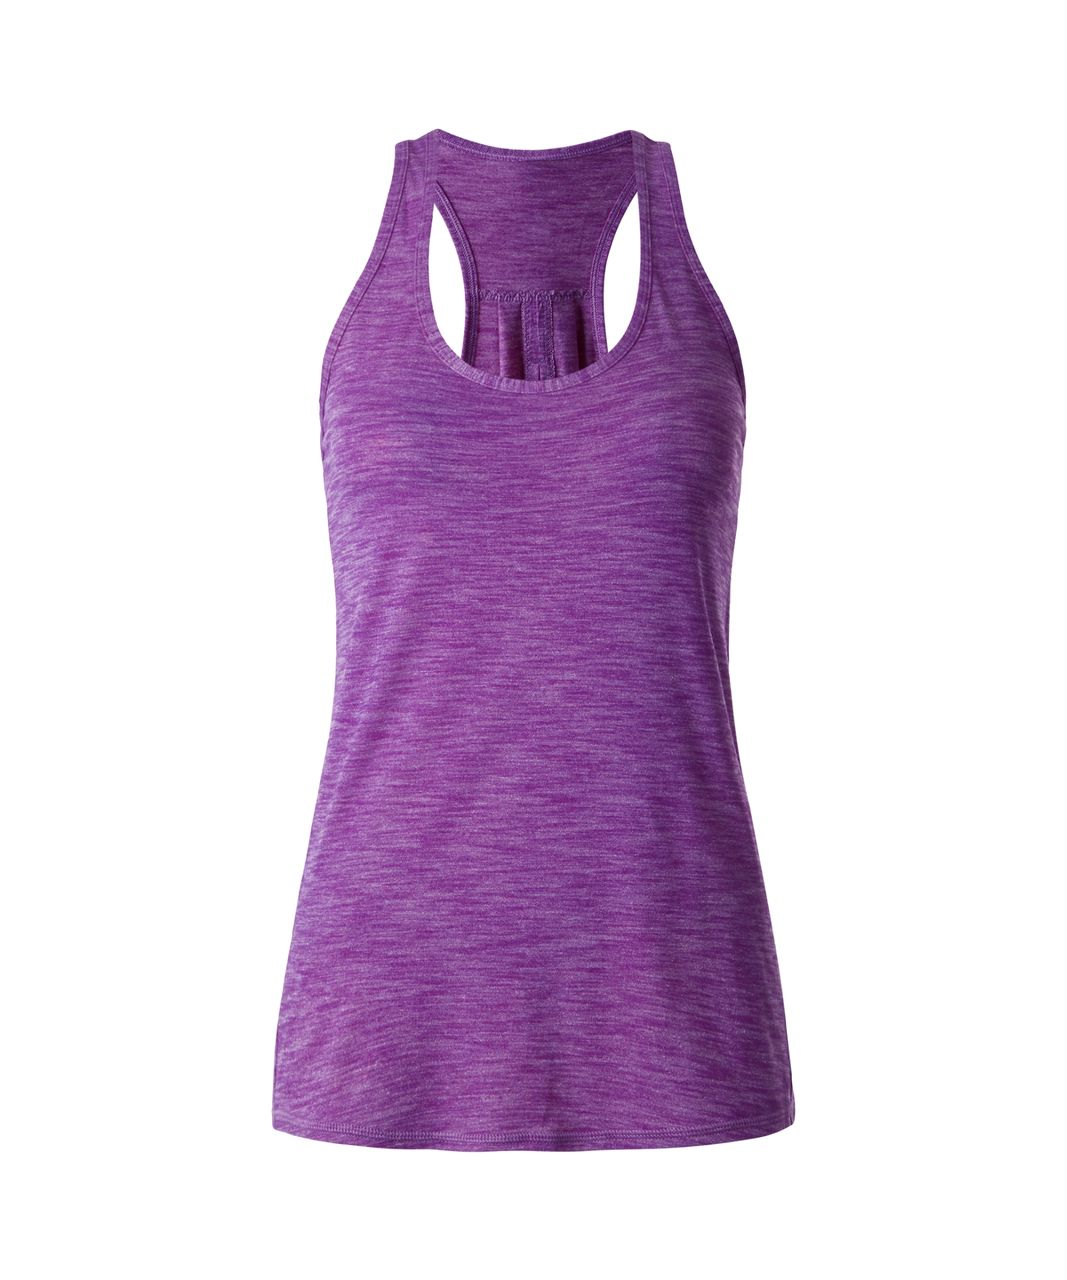 Lululemon Salute the Sun Tank - Heathered Tender Violet